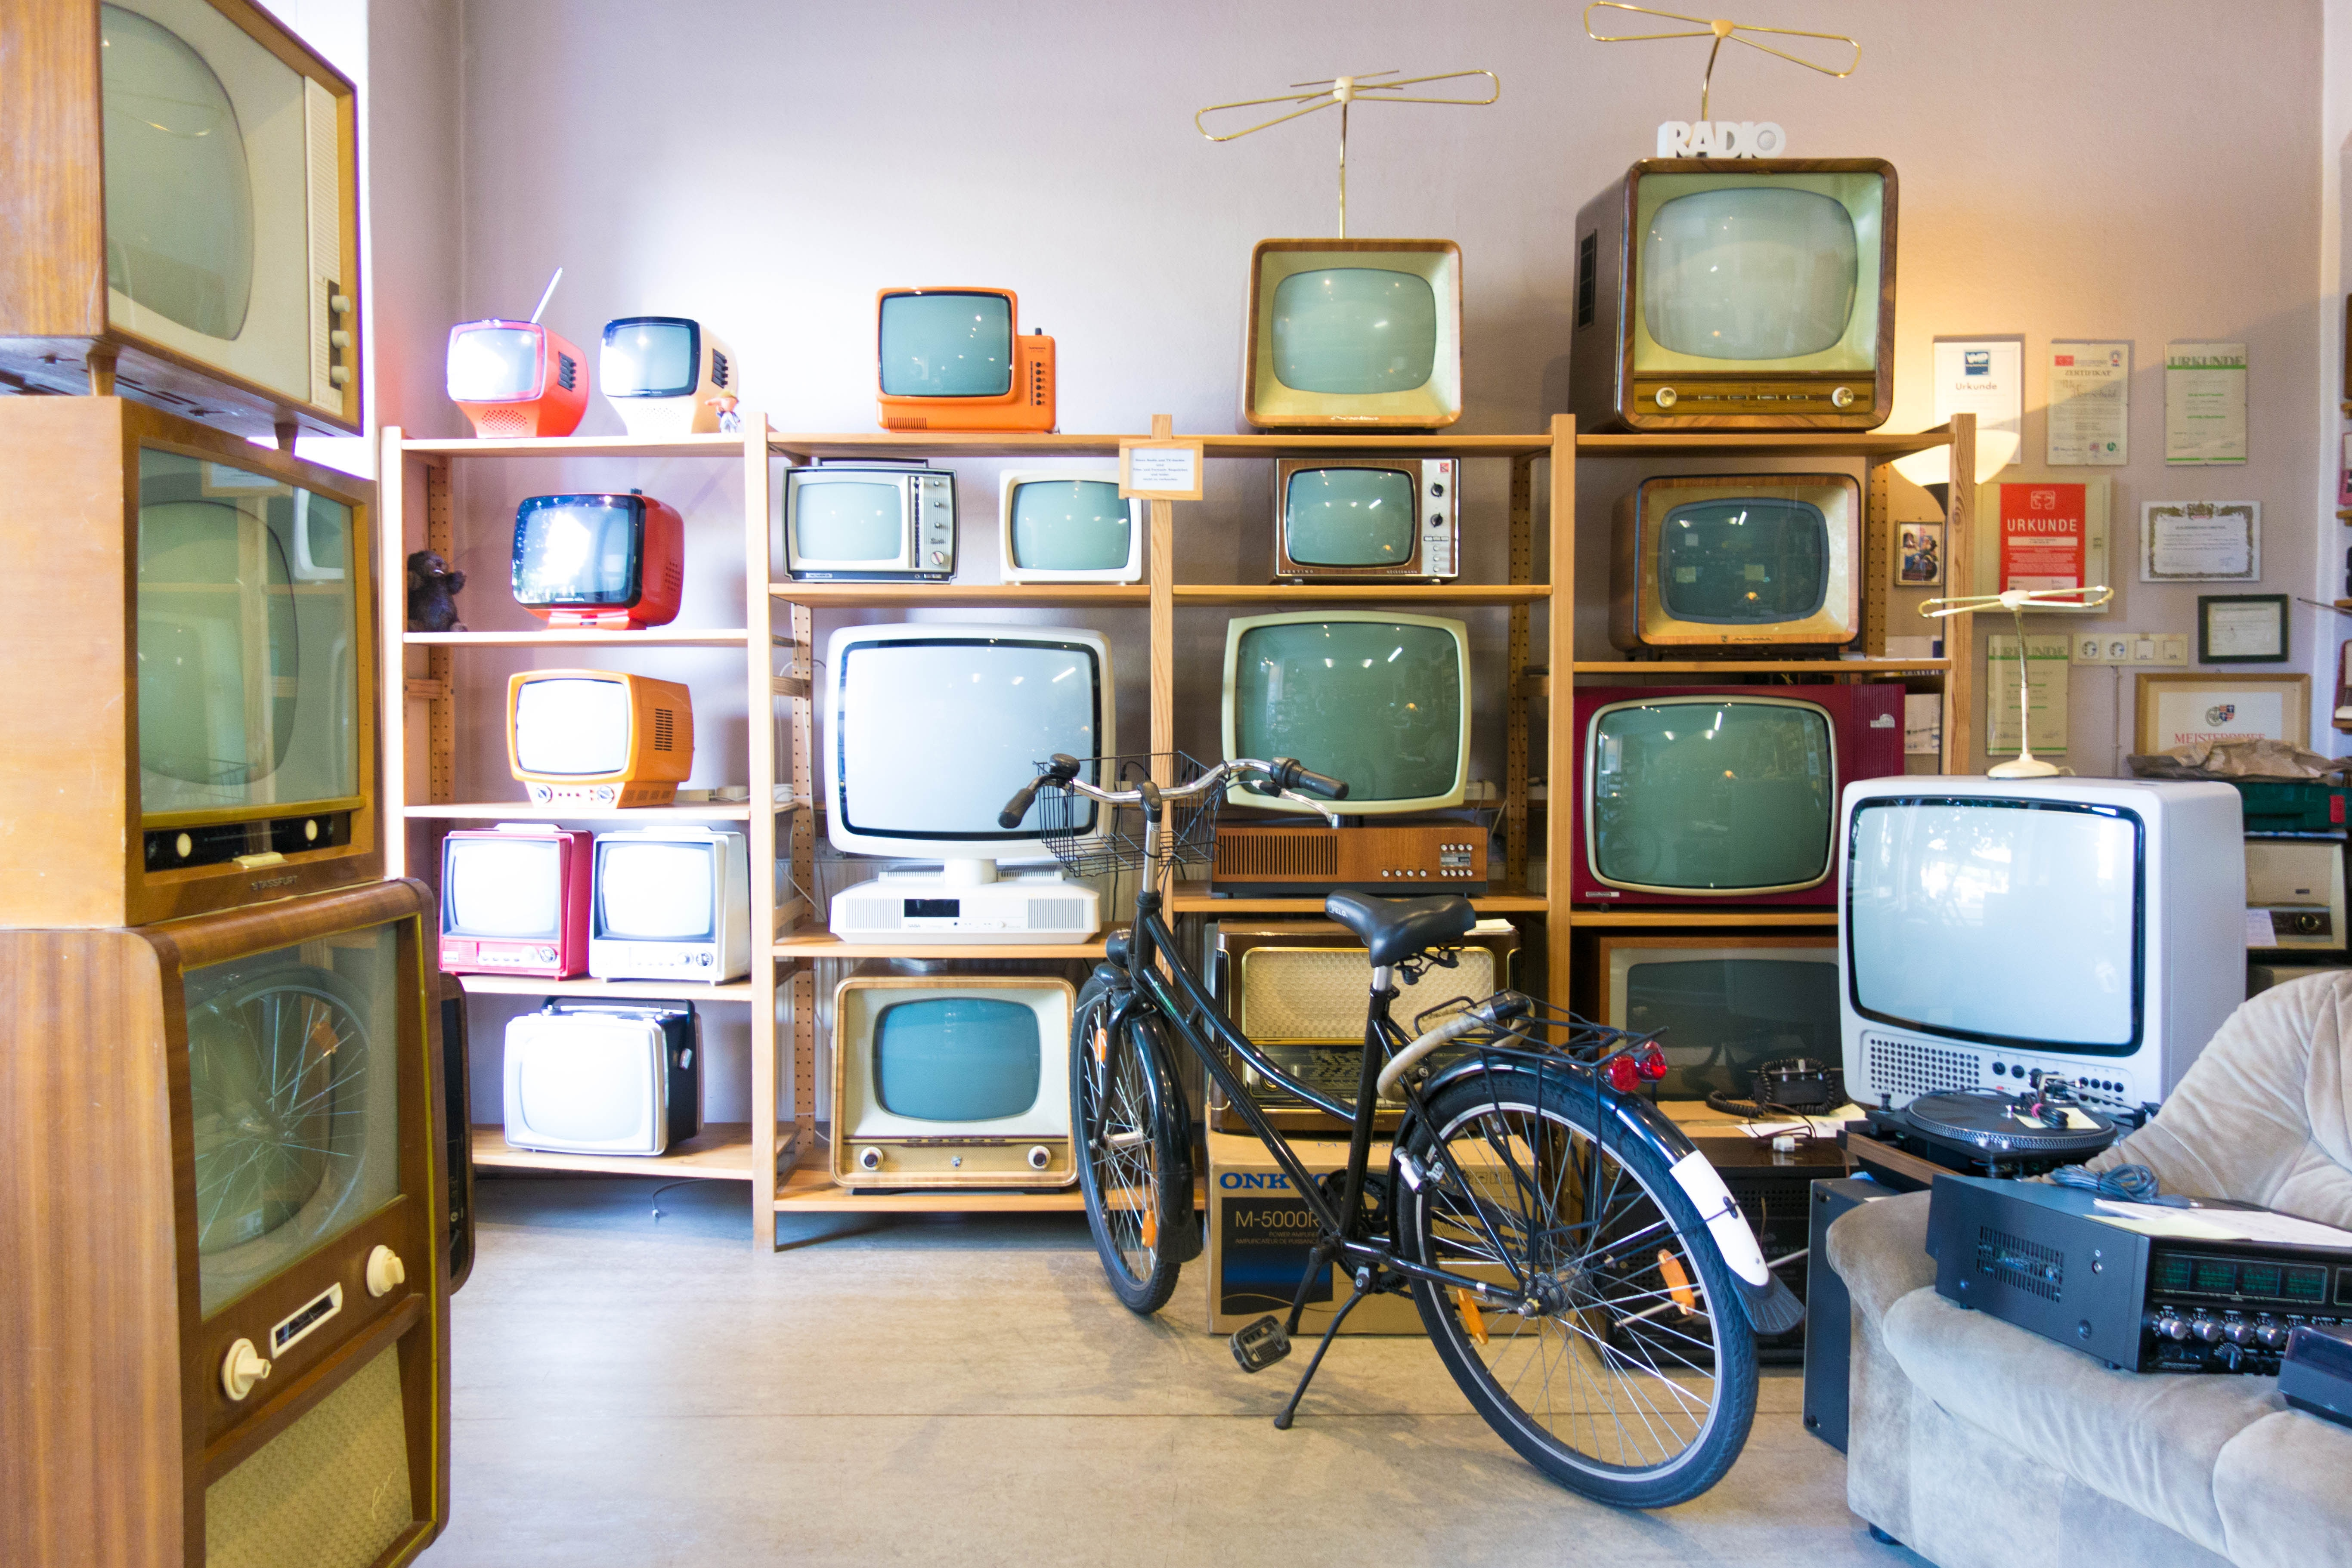 Picture of several vintage televisions on  shelf. A bike is propped up in front of them.